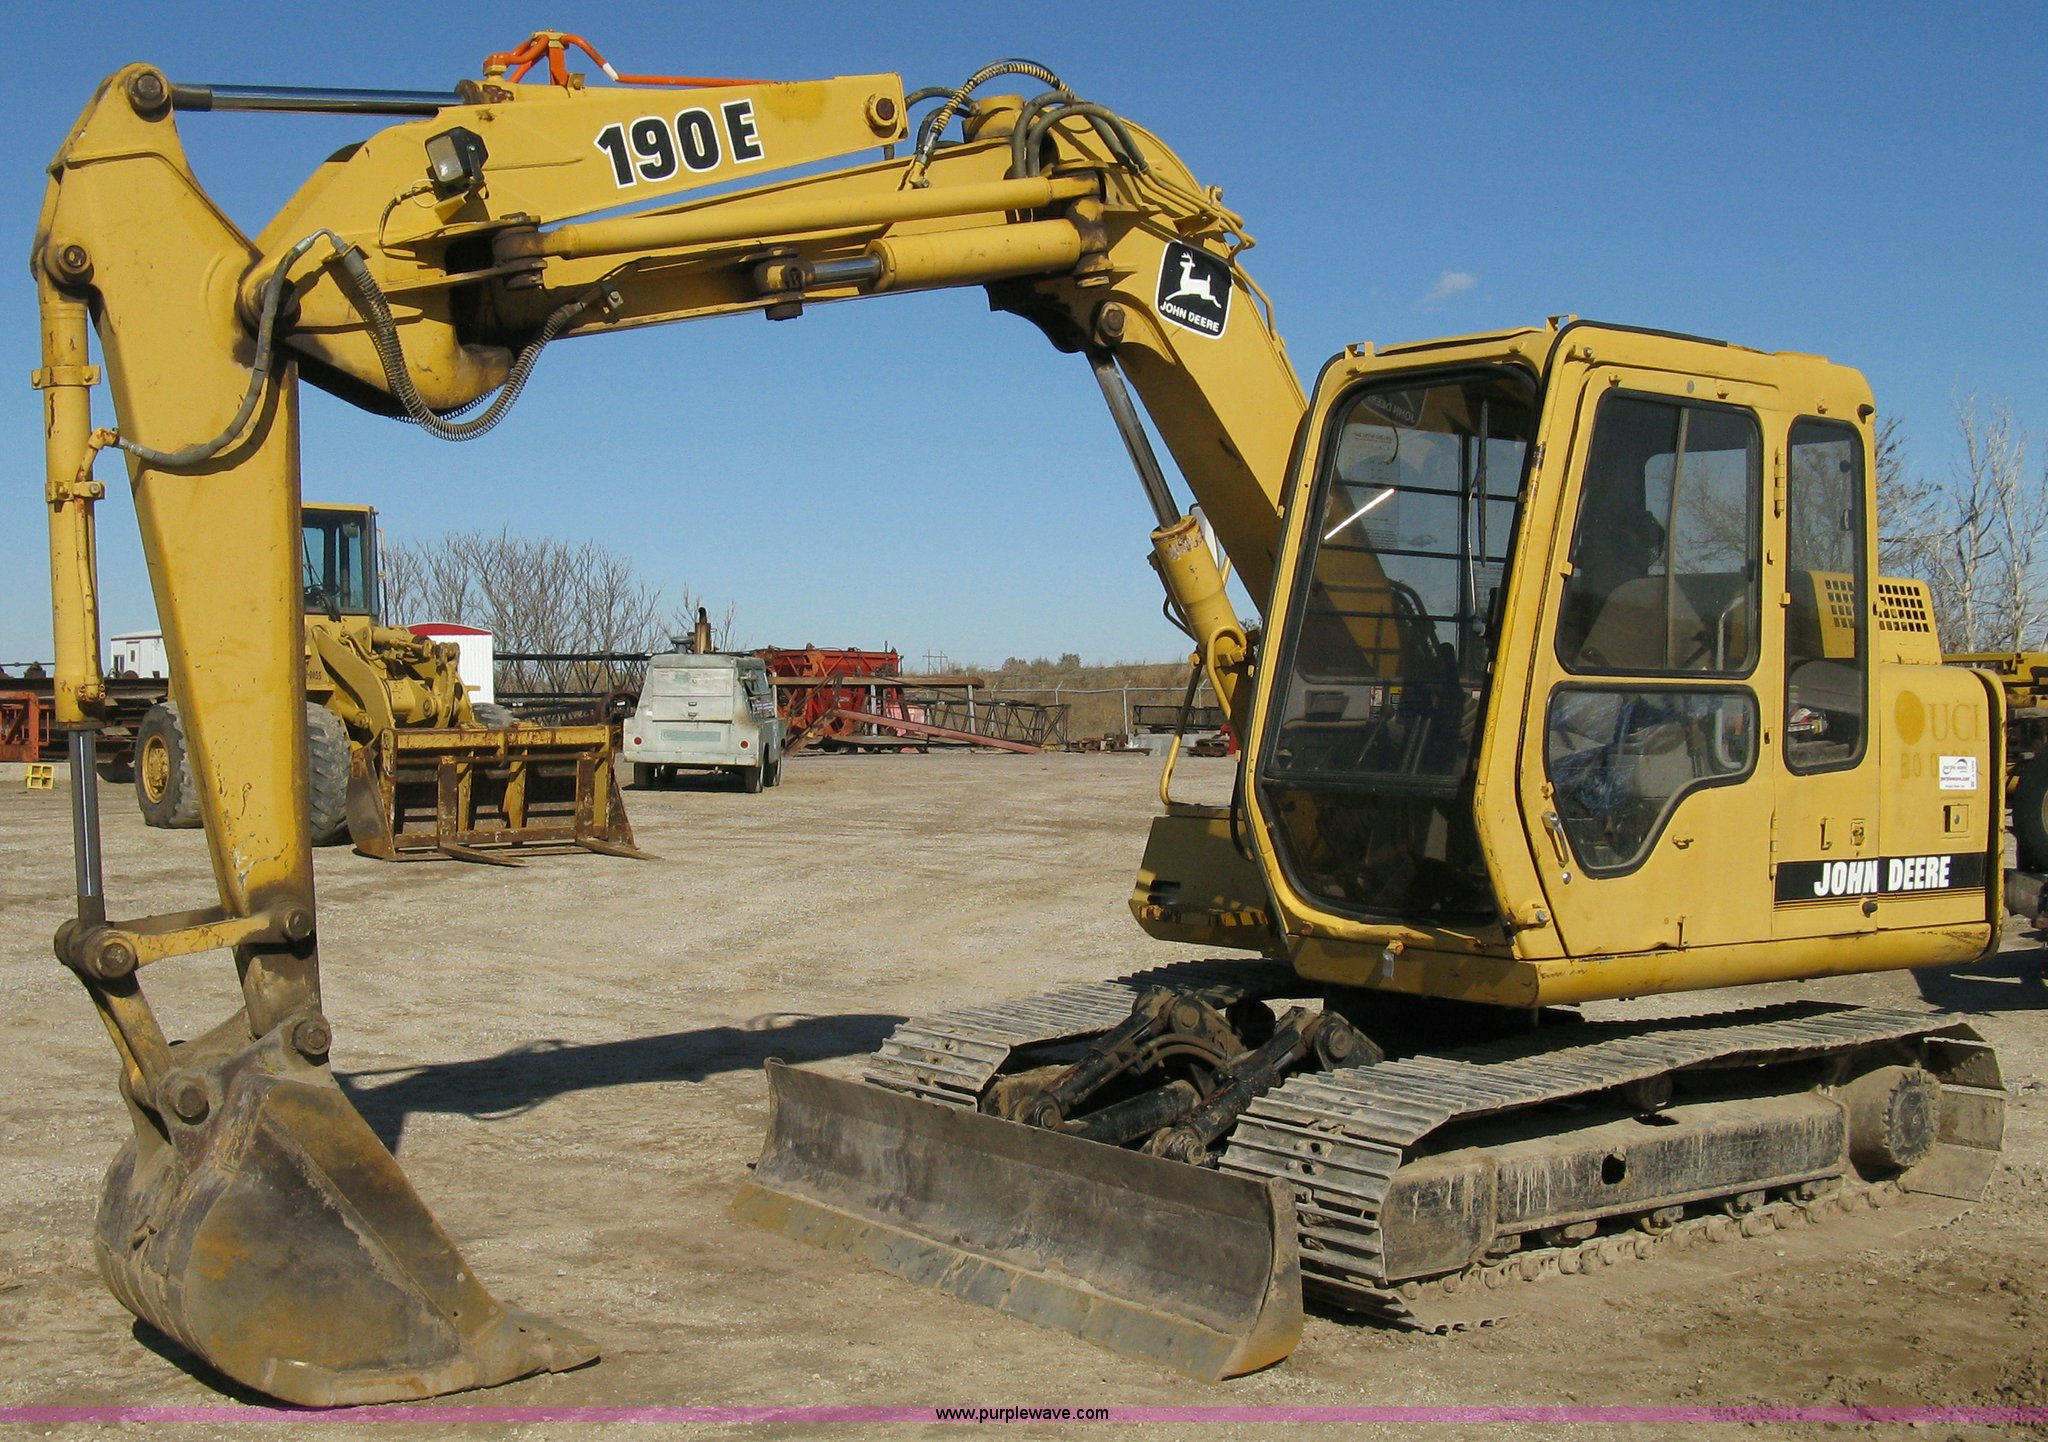 A4469 image for item A4469 1995 John Deere 190E excavator